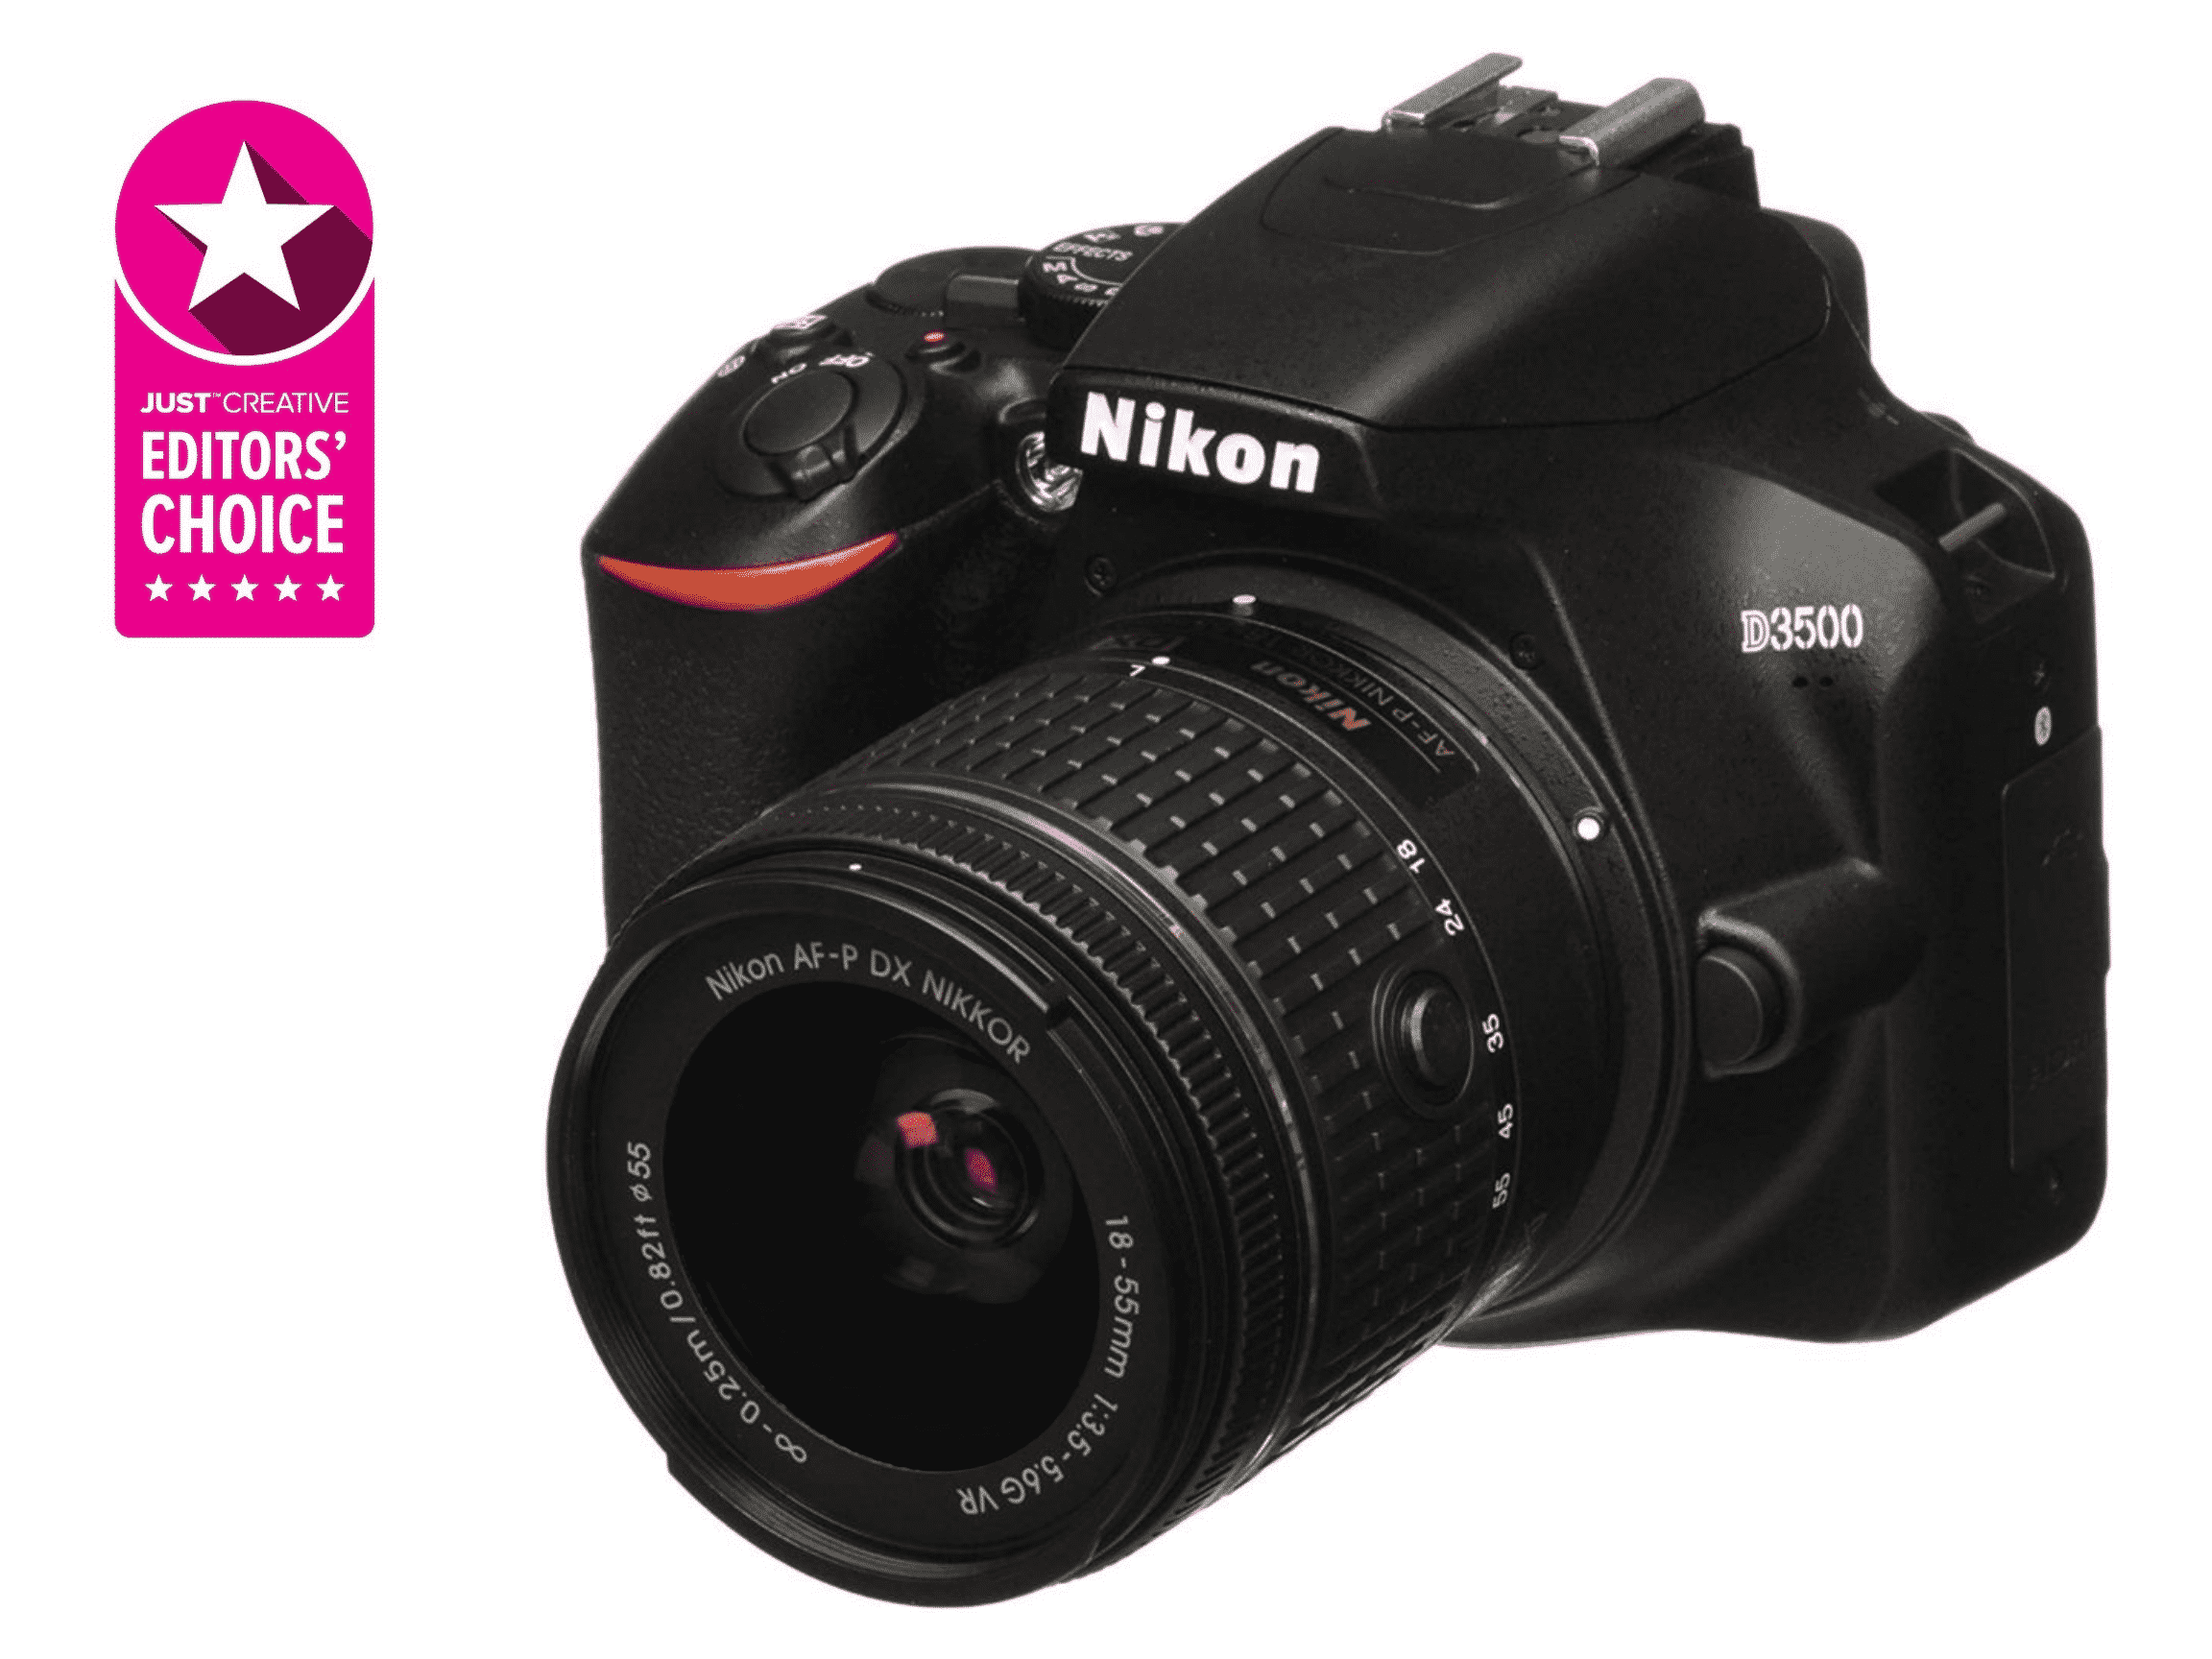 Nikon D3500 - Best all-round camera for beginners